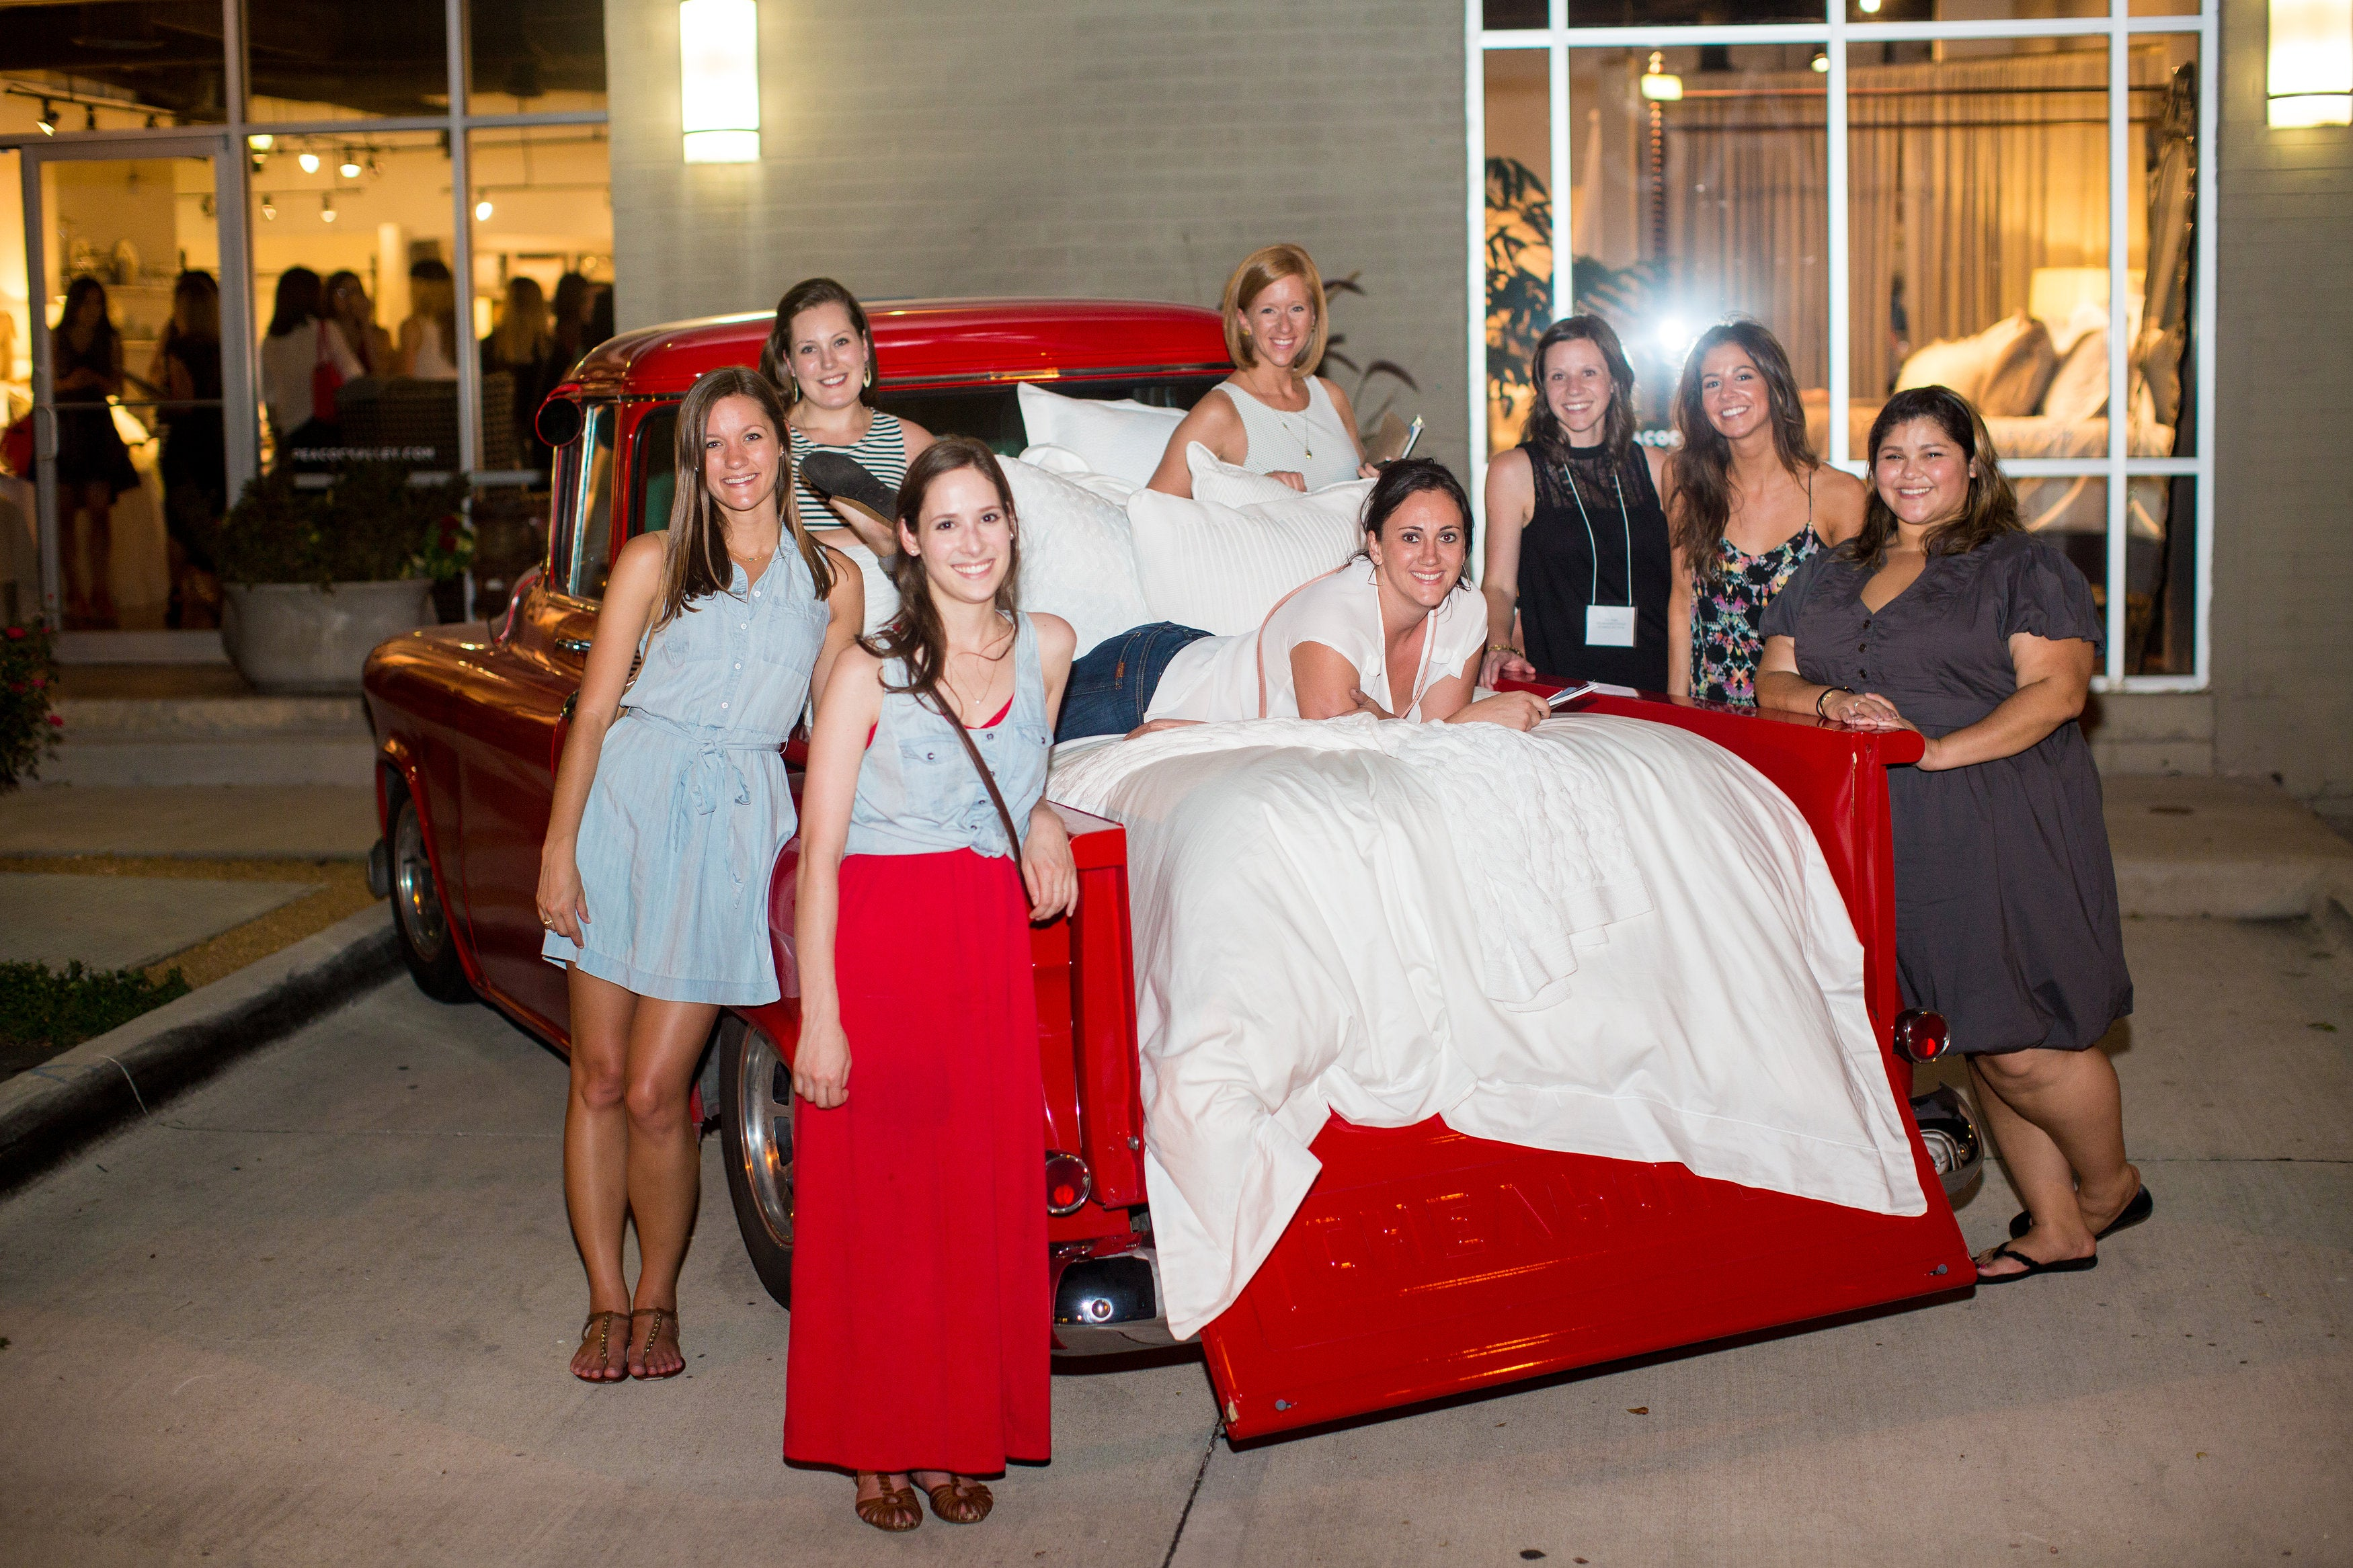 Eight ladies pose with a bed made in the bed of a classic, candy-apple-red Chevy pickup truck